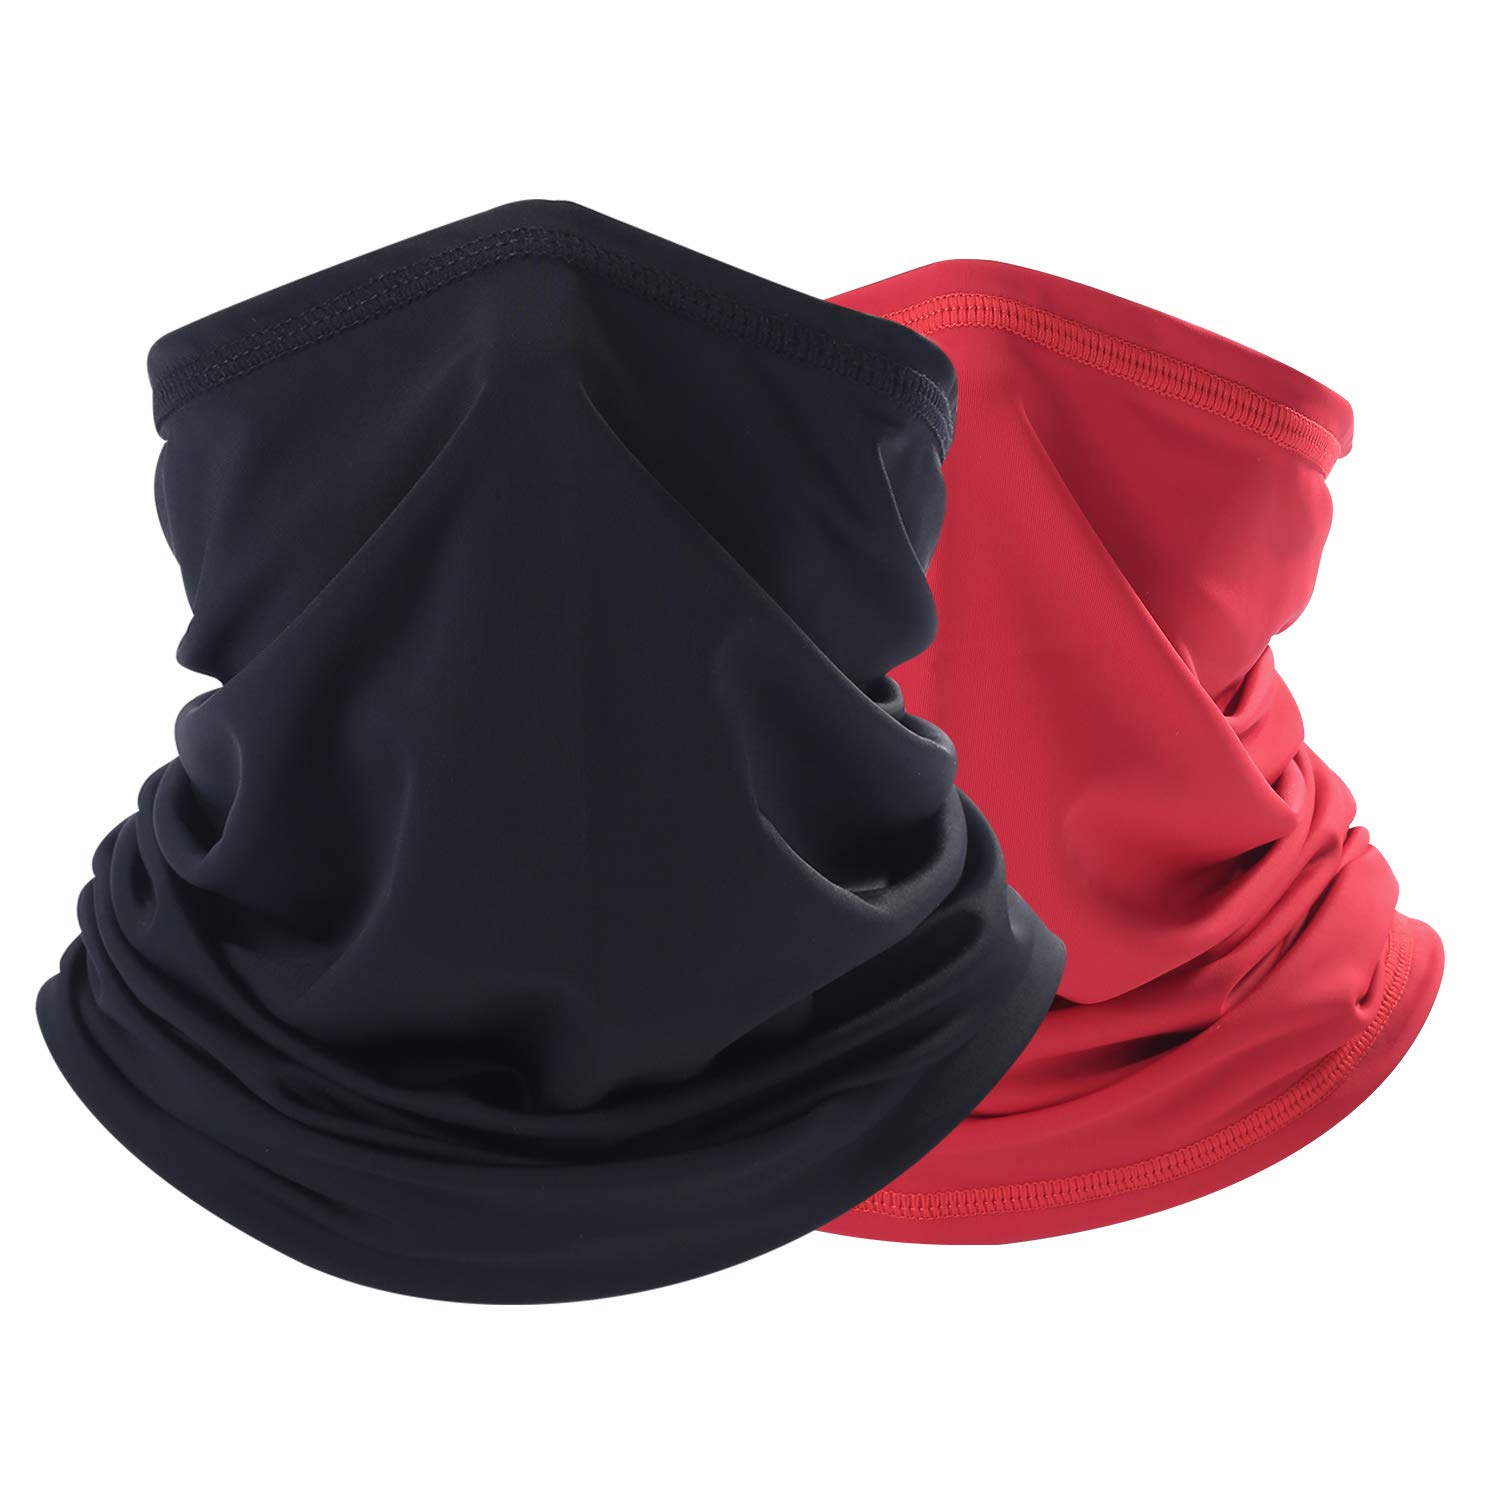 THINDUST Summer Bandana Face Mask -Dust Sun UV Protection Neck Gaiter - for Men & Women